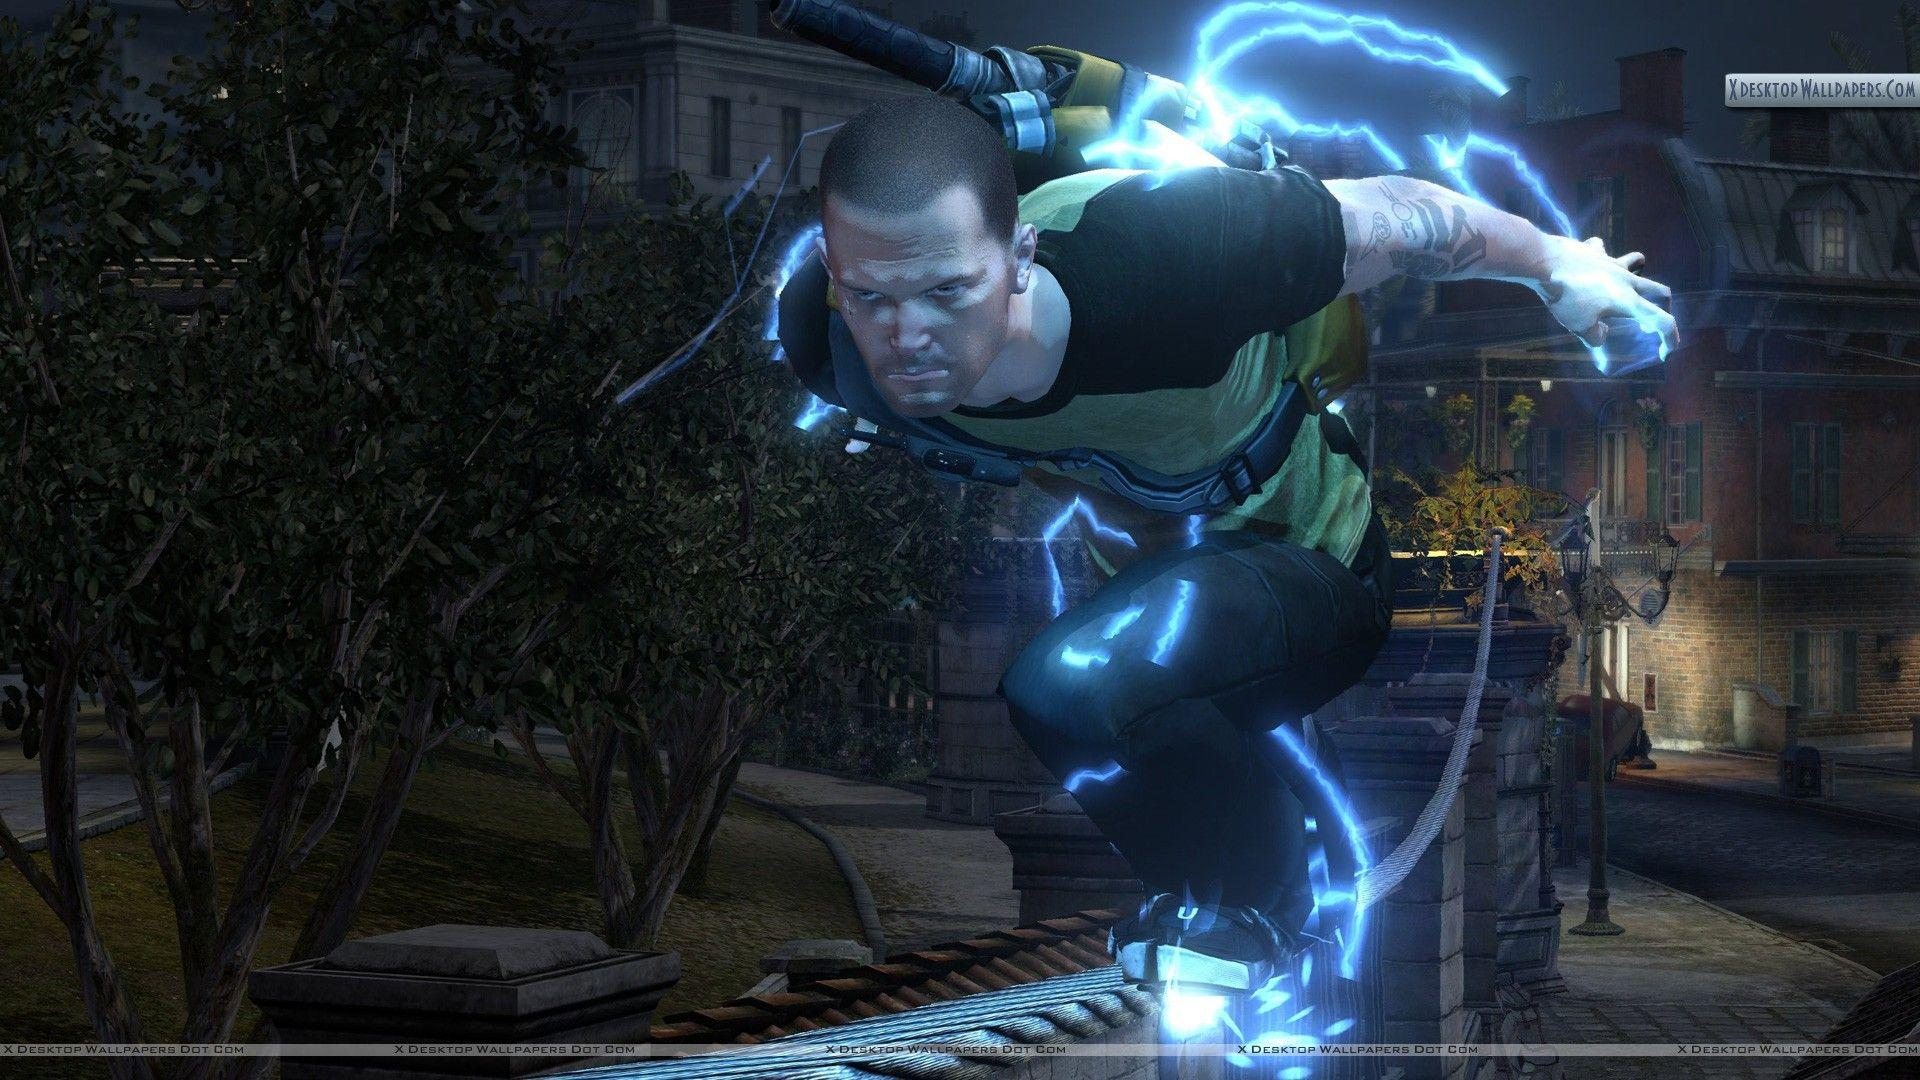 inFAMOUS 2 Wallpapers, Photos & Image in HD